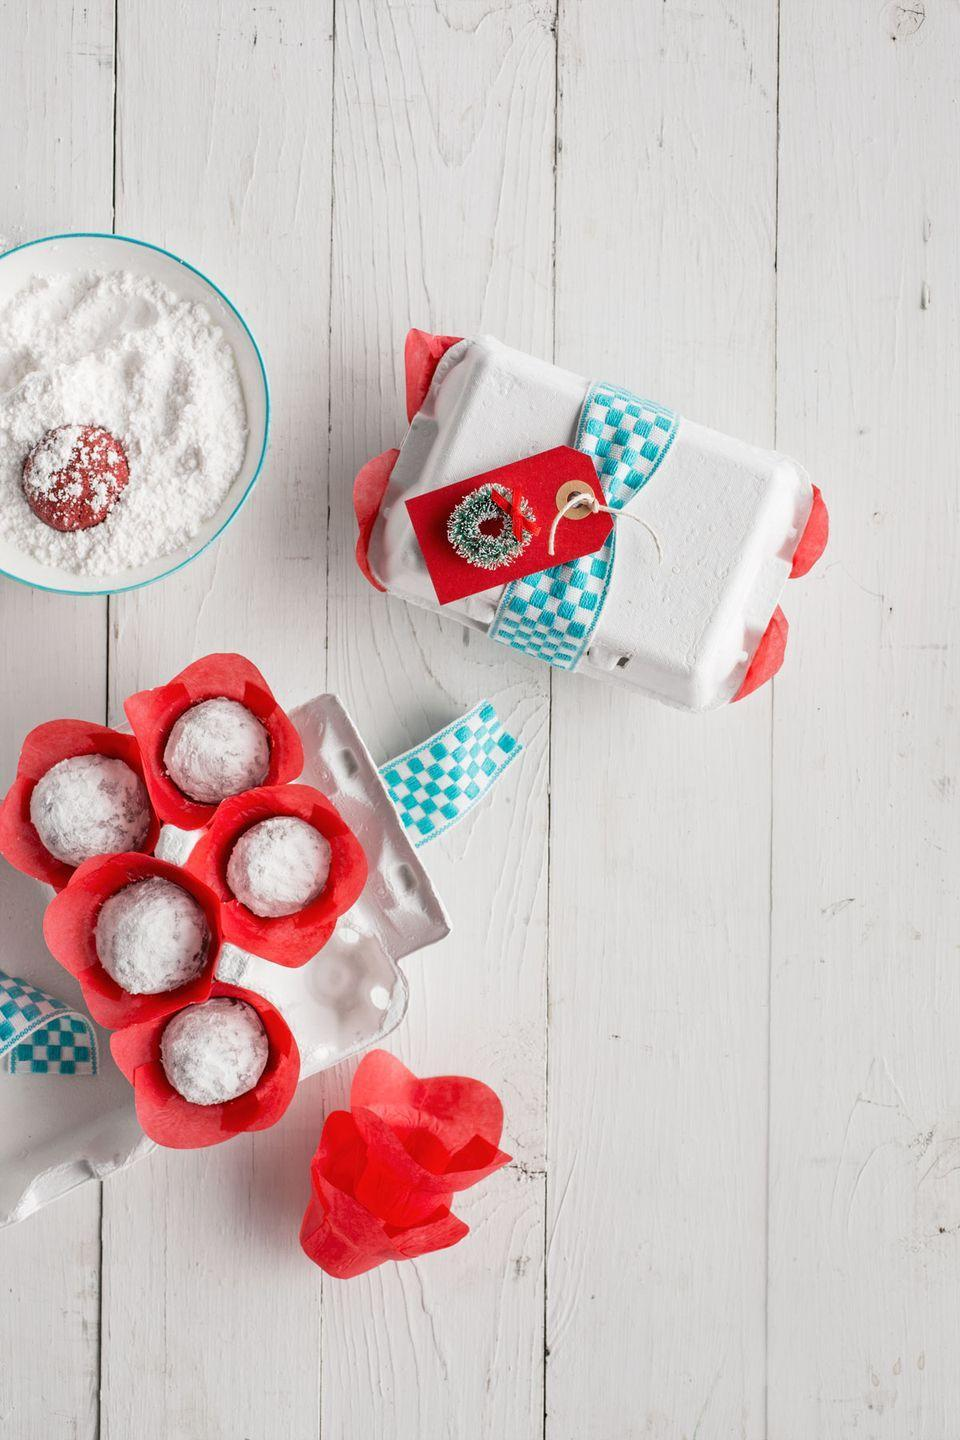 "<p>After whipping up these snowball treats, fill a six-egg carton with mini lotus cupcake liners and add cookies. Tie it up with a plain tag adorned with a bottle brush wreath.</p><p><a href=""https://www.countryliving.com/food-drinks/recipes/a36895/red-velvet-snowballs/"" rel=""nofollow noopener"" target=""_blank"" data-ylk=""slk:Get the recipe."" class=""link rapid-noclick-resp""><strong>Get the recipe.</strong></a></p><p><a class=""link rapid-noclick-resp"" href=""https://go.redirectingat.com?id=74968X1596630&url=https%3A%2F%2Fwww.papermart.com%2Flotus-cupcake-baking-cups%2Fid%3D36817&sref=http%3A%2F%2Fwww.countryliving.com%2Ffood-drinks%2Fg647%2Fholiday-cookies-1208%2F"" rel=""nofollow noopener"" target=""_blank"" data-ylk=""slk:SHOP LOTUS CUPCAKE LINERS"">SHOP LOTUS CUPCAKE LINERS</a><br></p>"